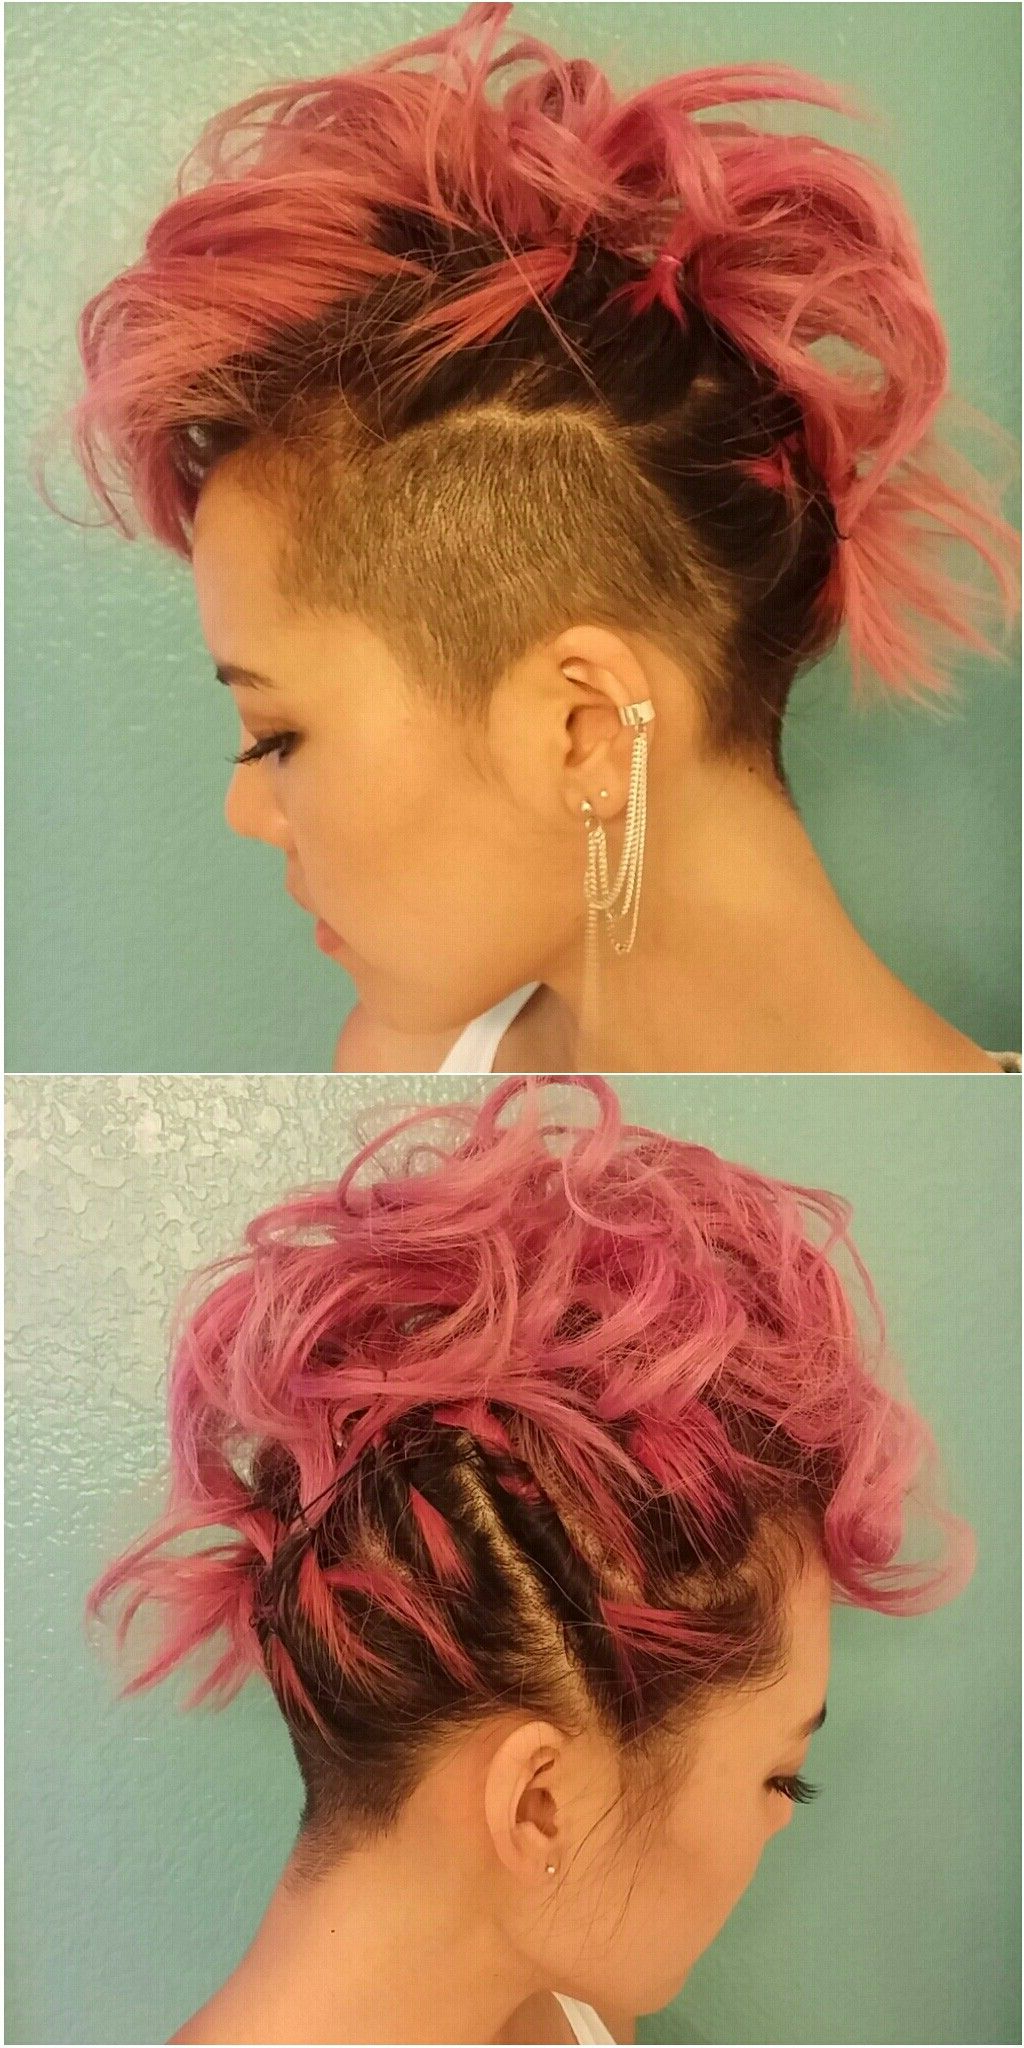 Sunny's With Most Popular Vibrant Red Mohawk Updo Hairstyles (View 19 of 20)